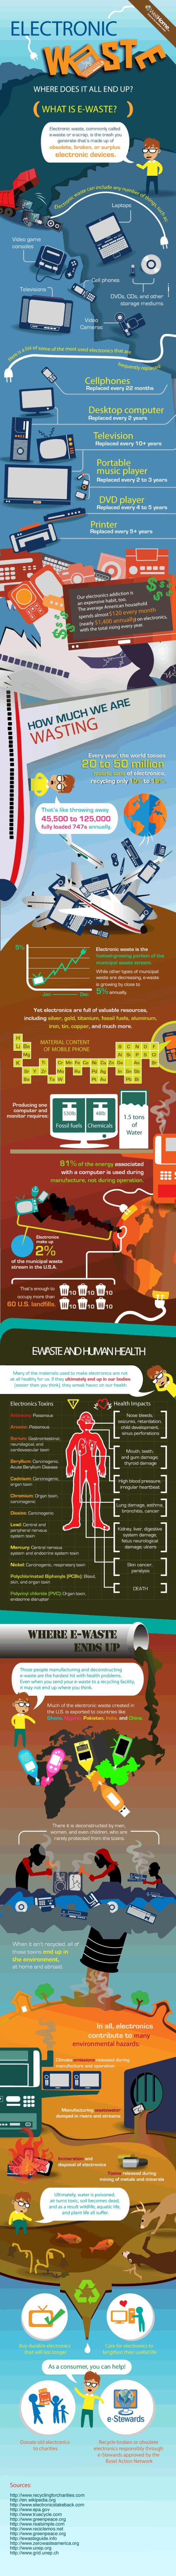 At least there is a positive contribution we can all make to the growing problem of e-waste | What happens to all the E-waste we produce?